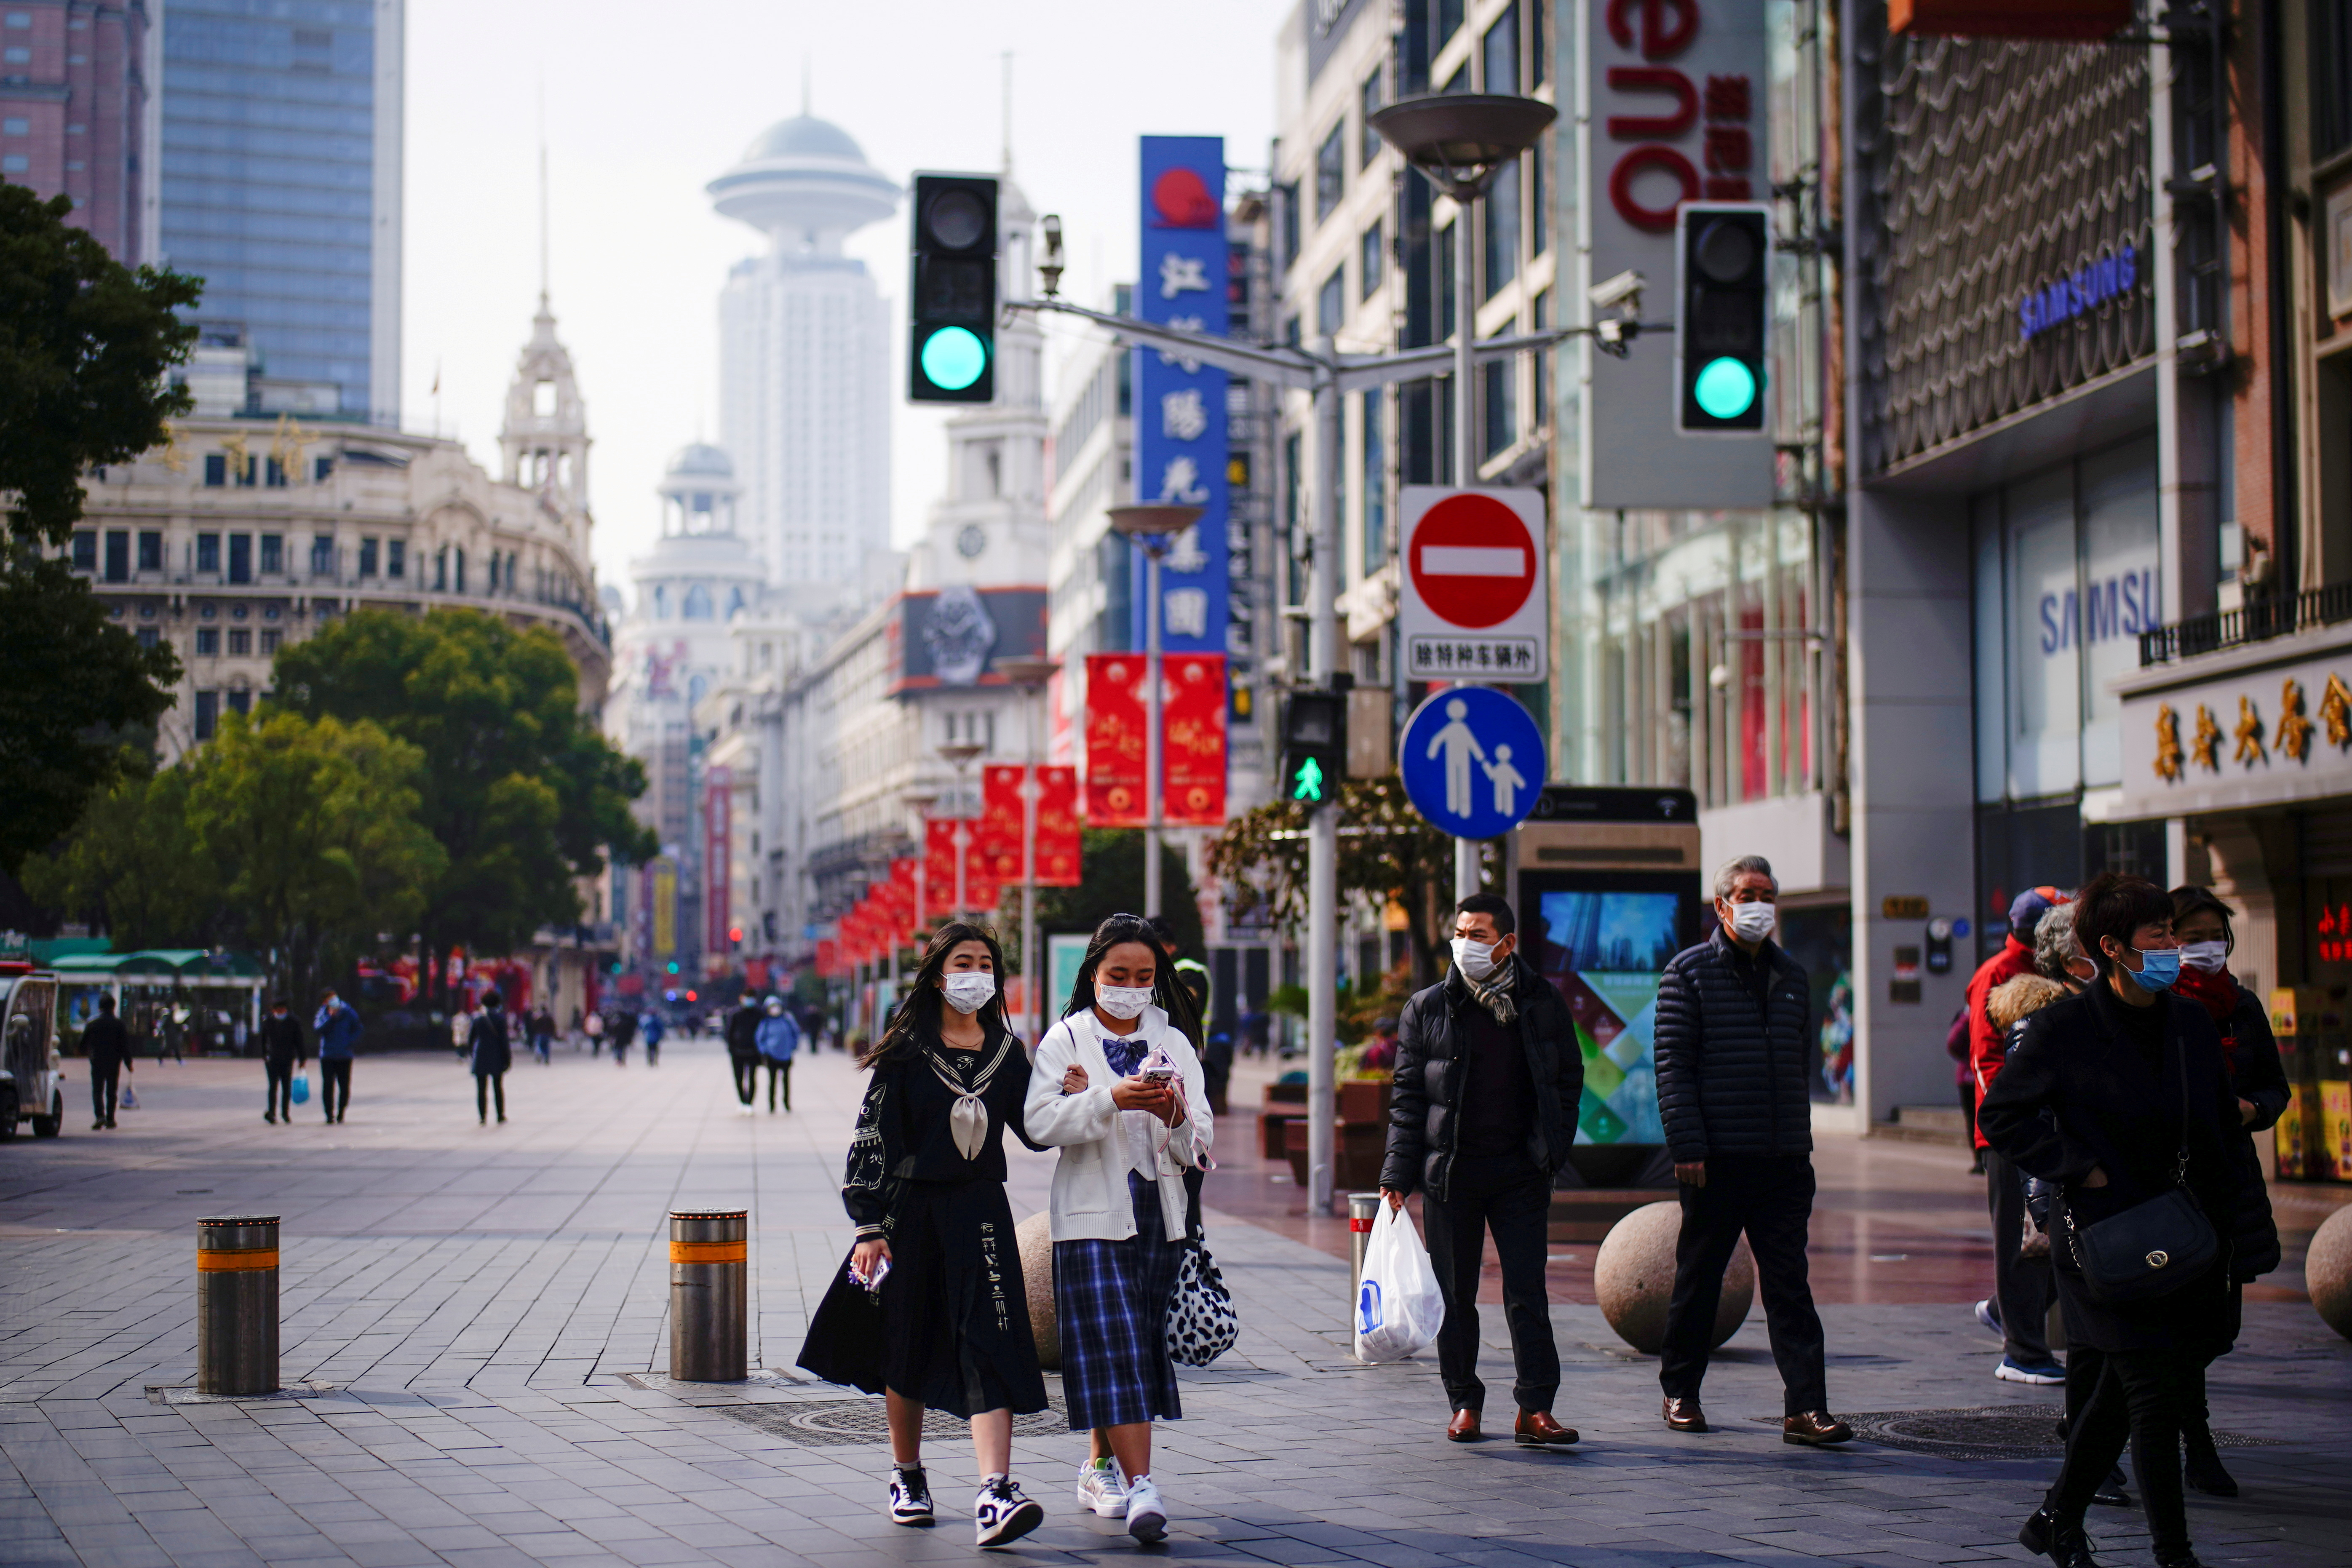 People wearing face masks walk at a main shopping area, following the coronavirus disease (COVID-19) outbreak in Shanghai, China January 27, 2021. REUTERS/Aly Song